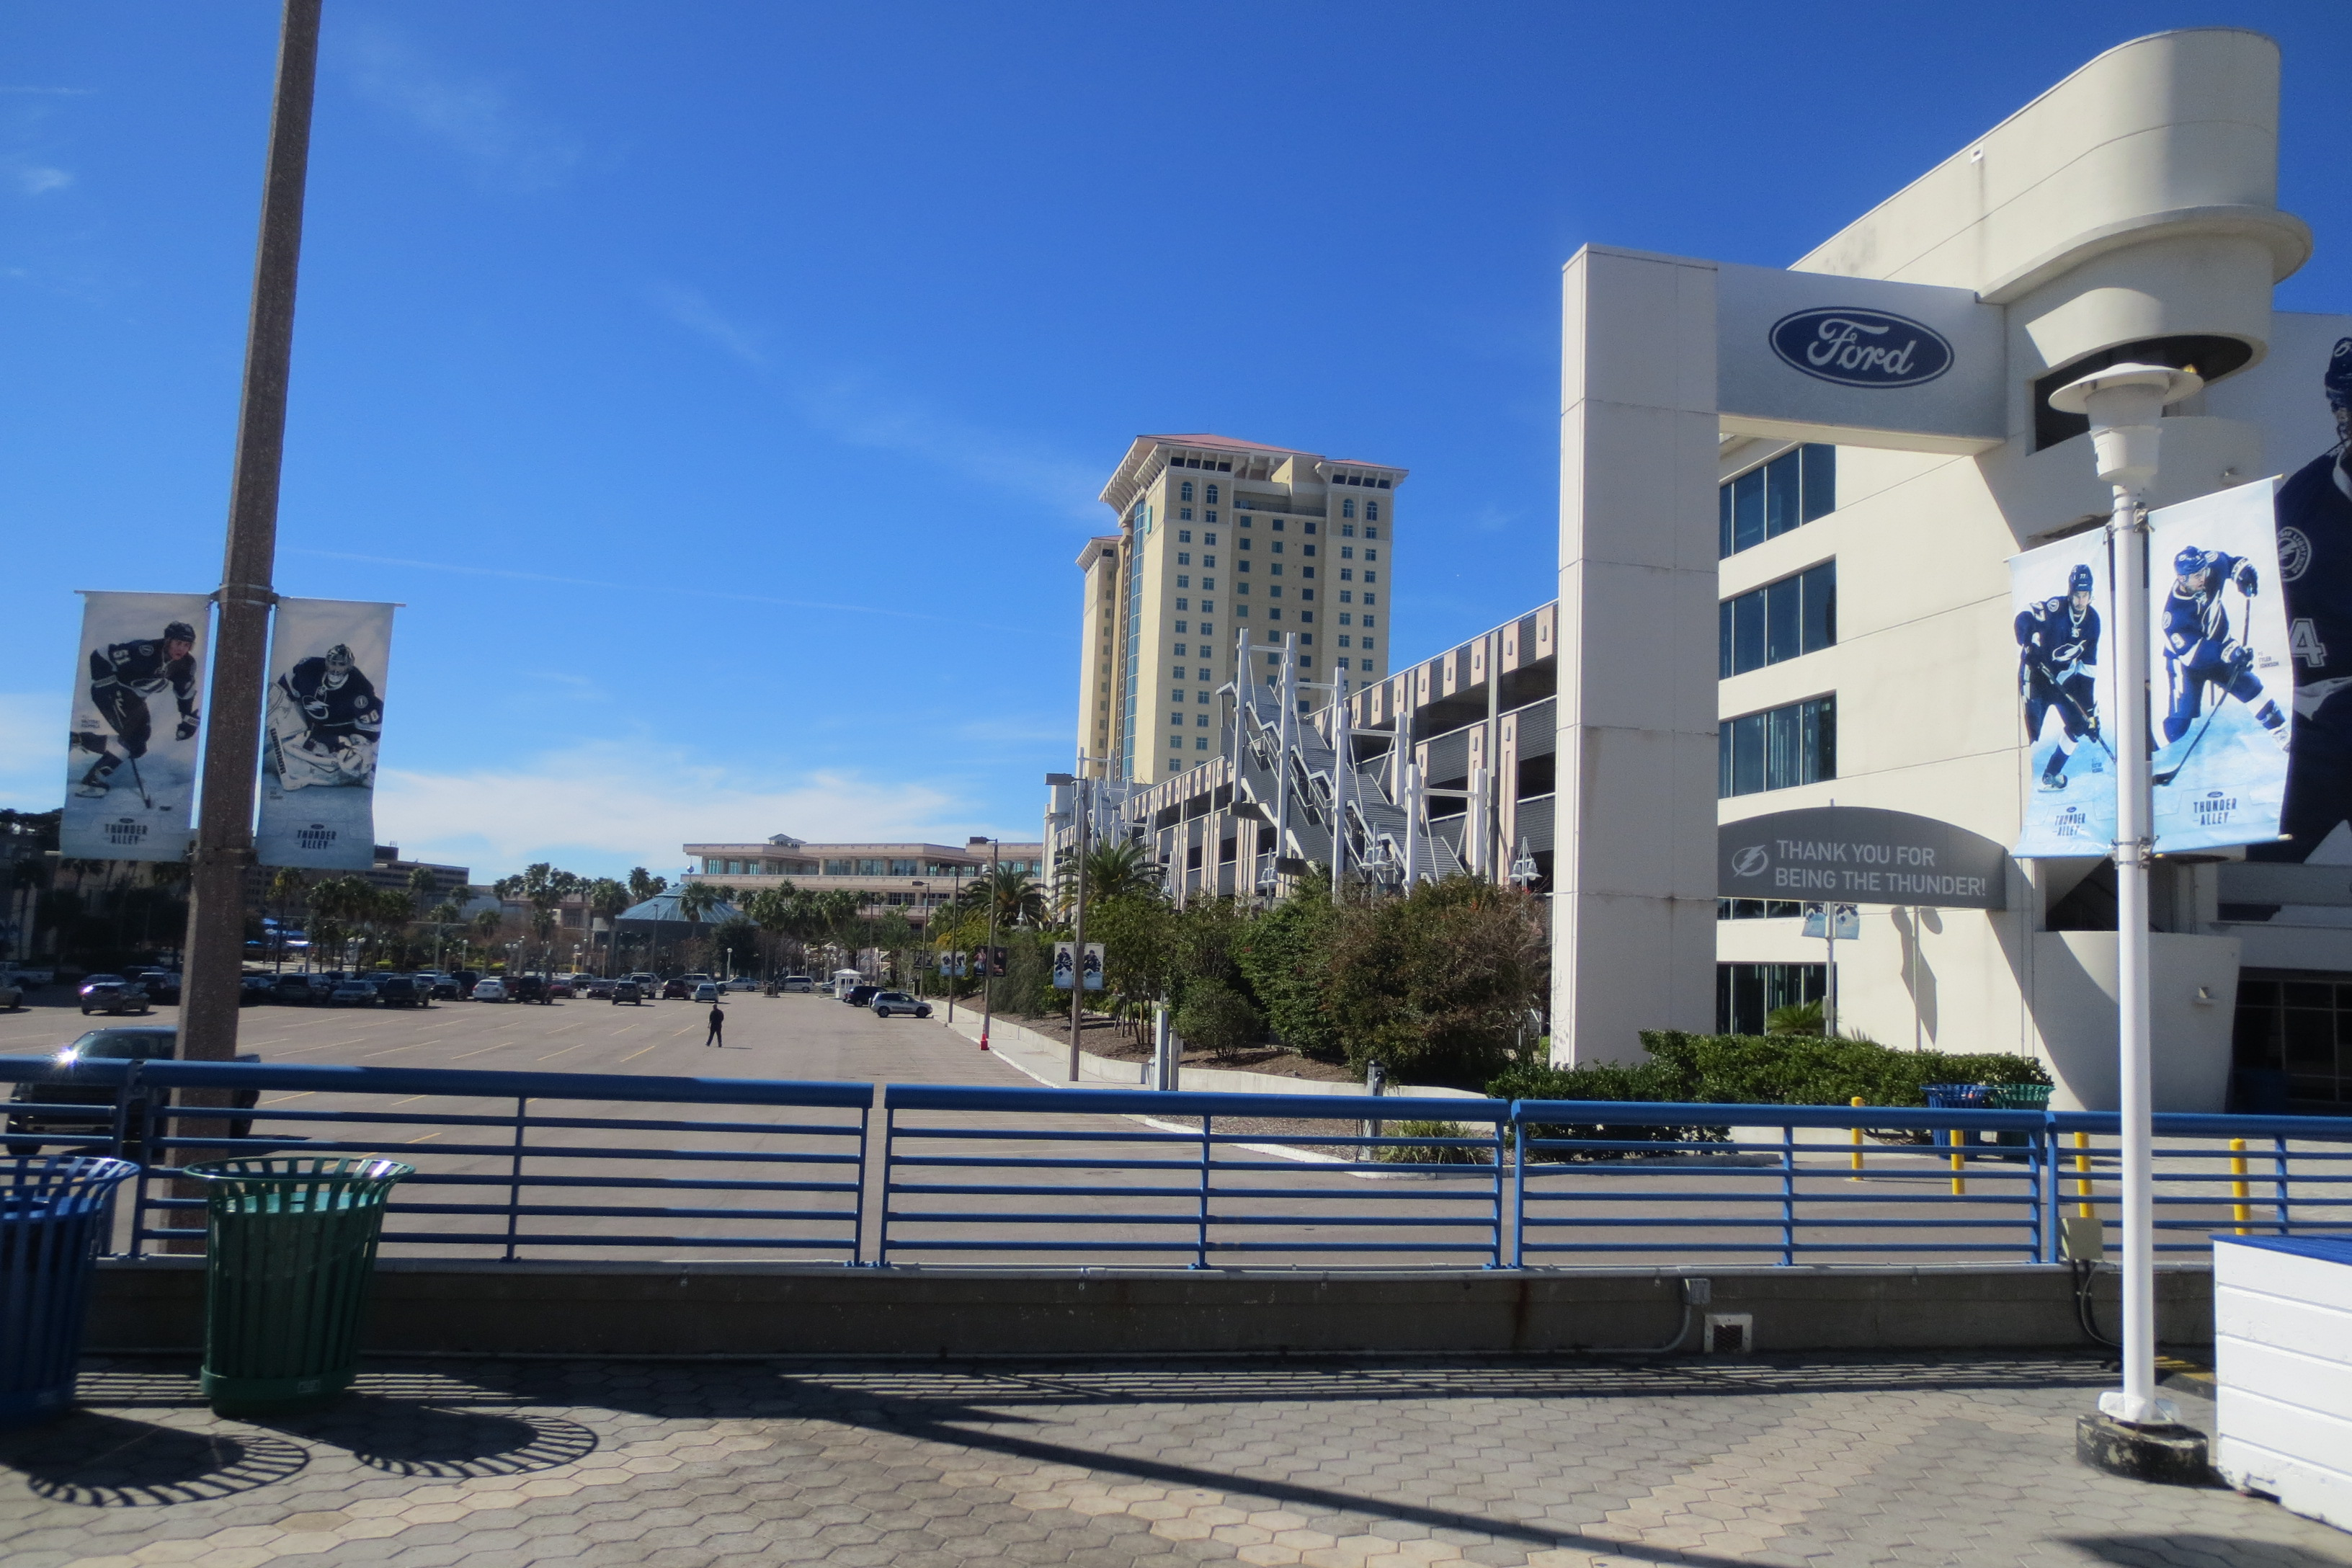 Tampa General Hospital 2019 (with Photos): Top 20 Places ...